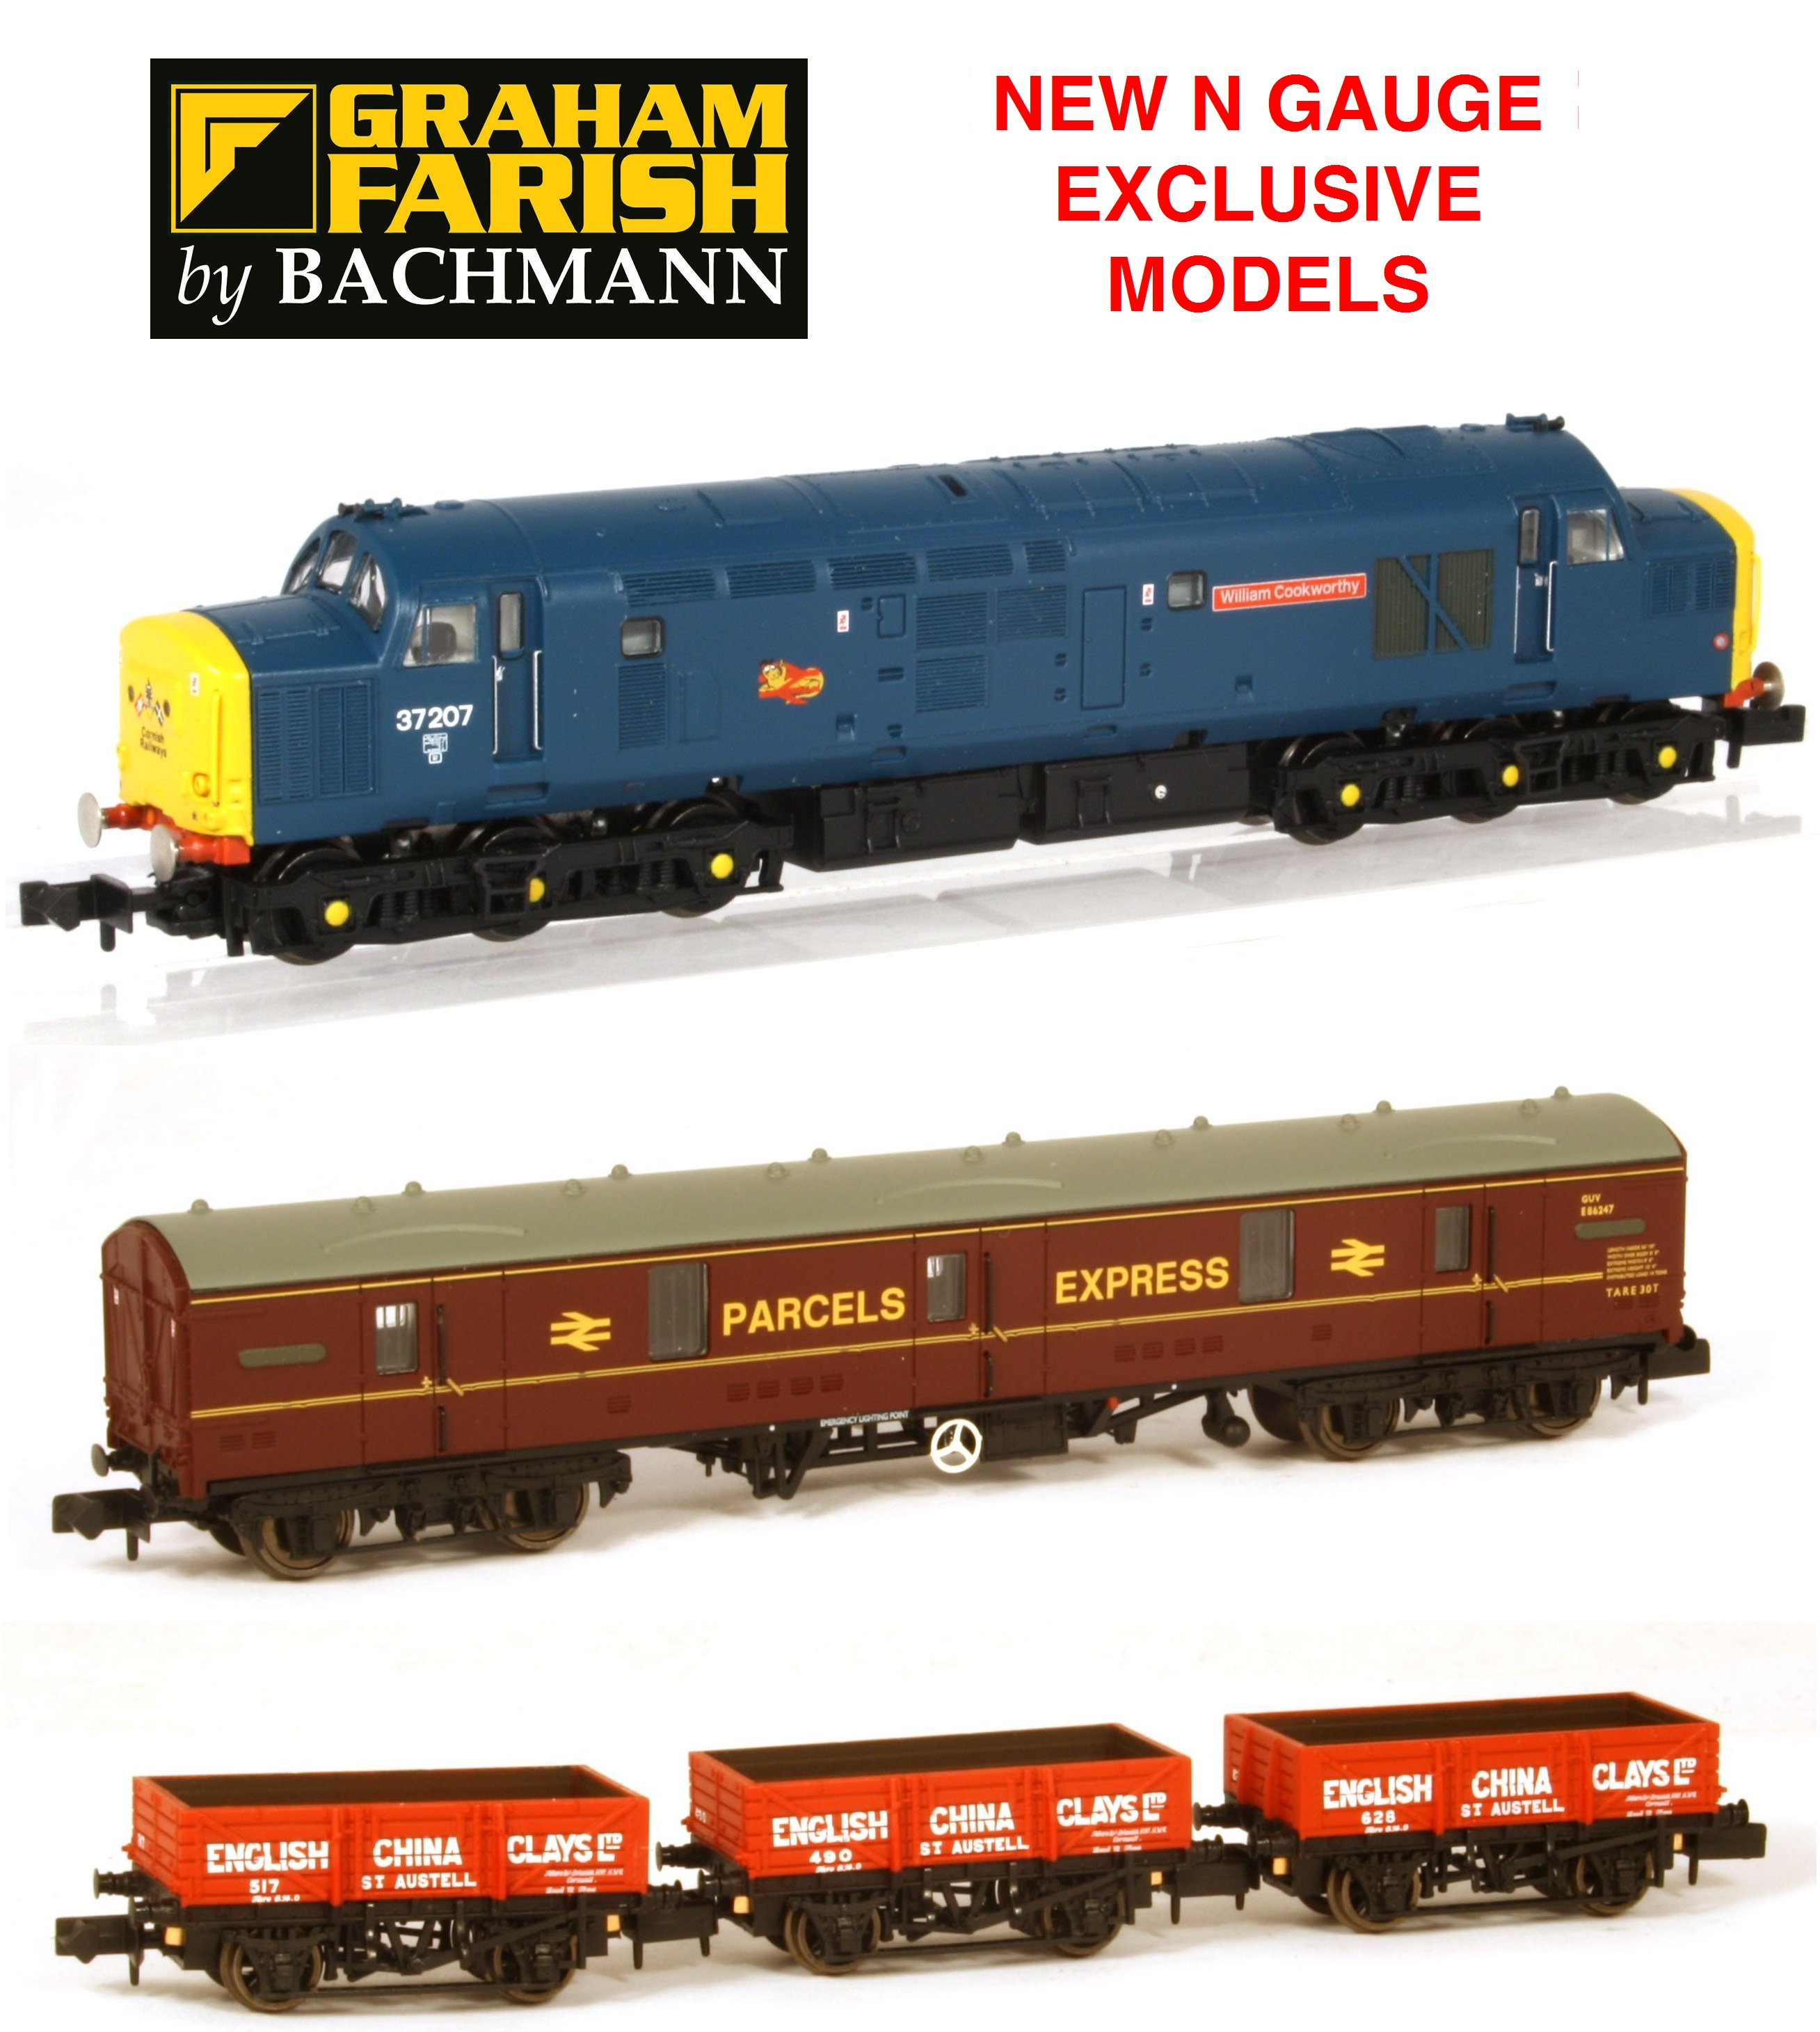 Graham Farish N Gauge Image